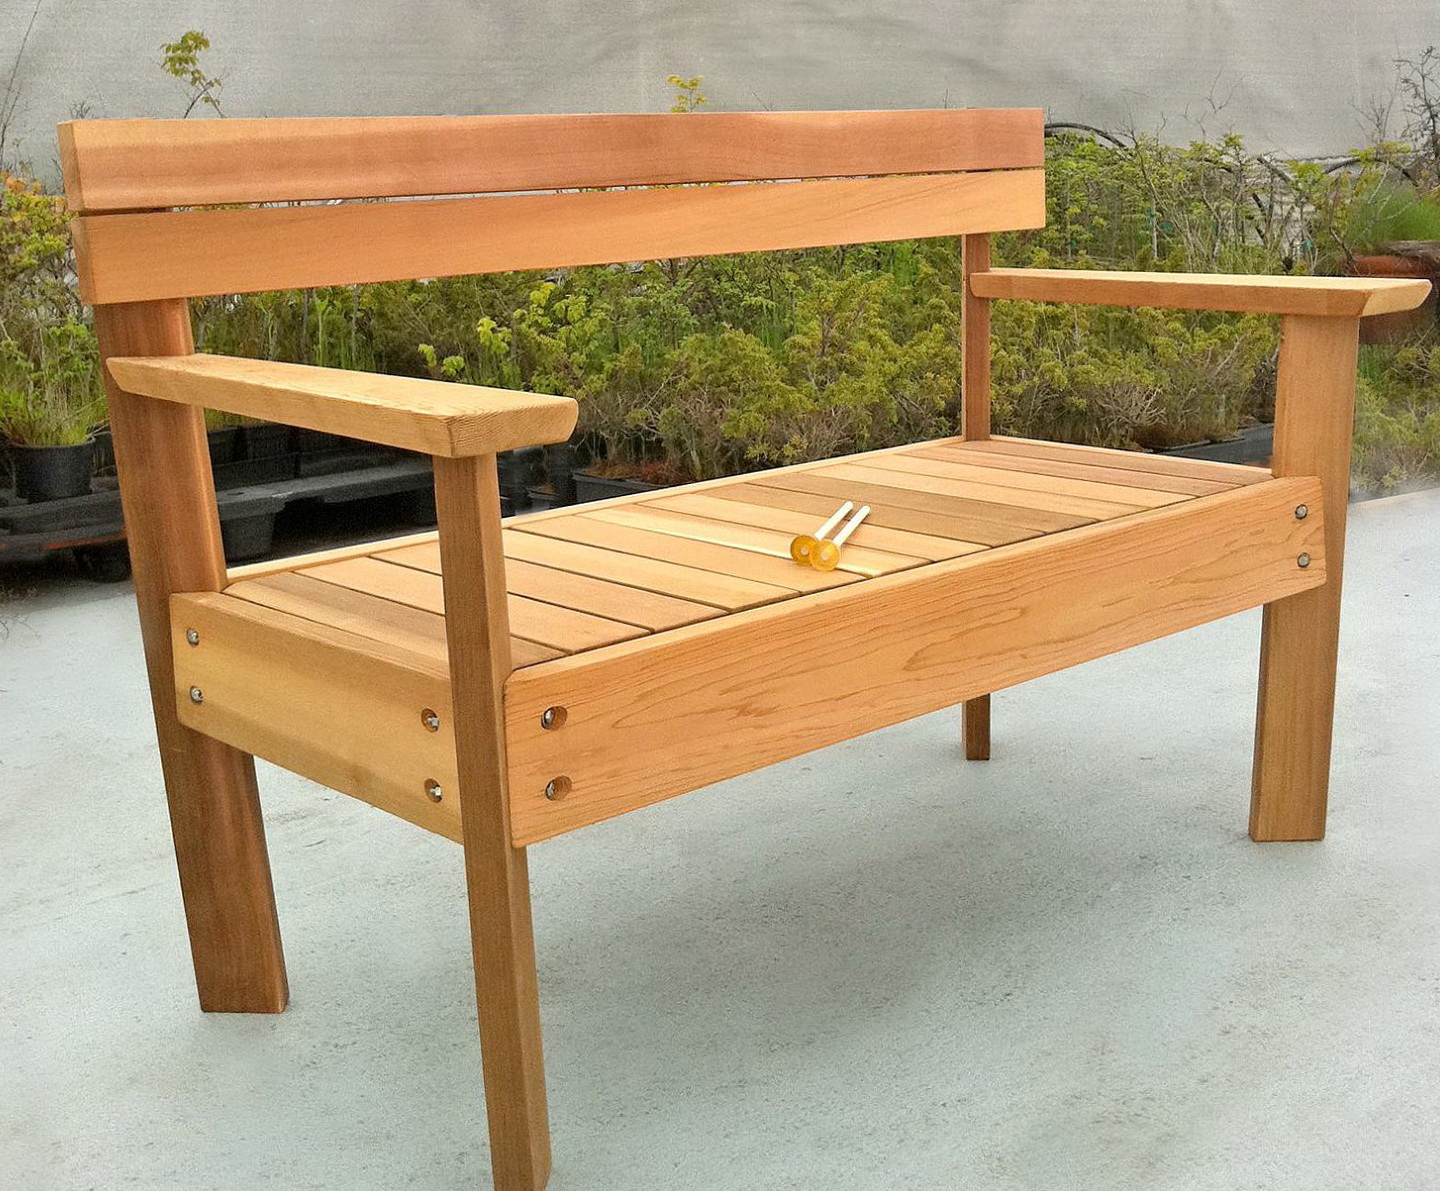 Merveilleux Outdoor Wood Bench Designs